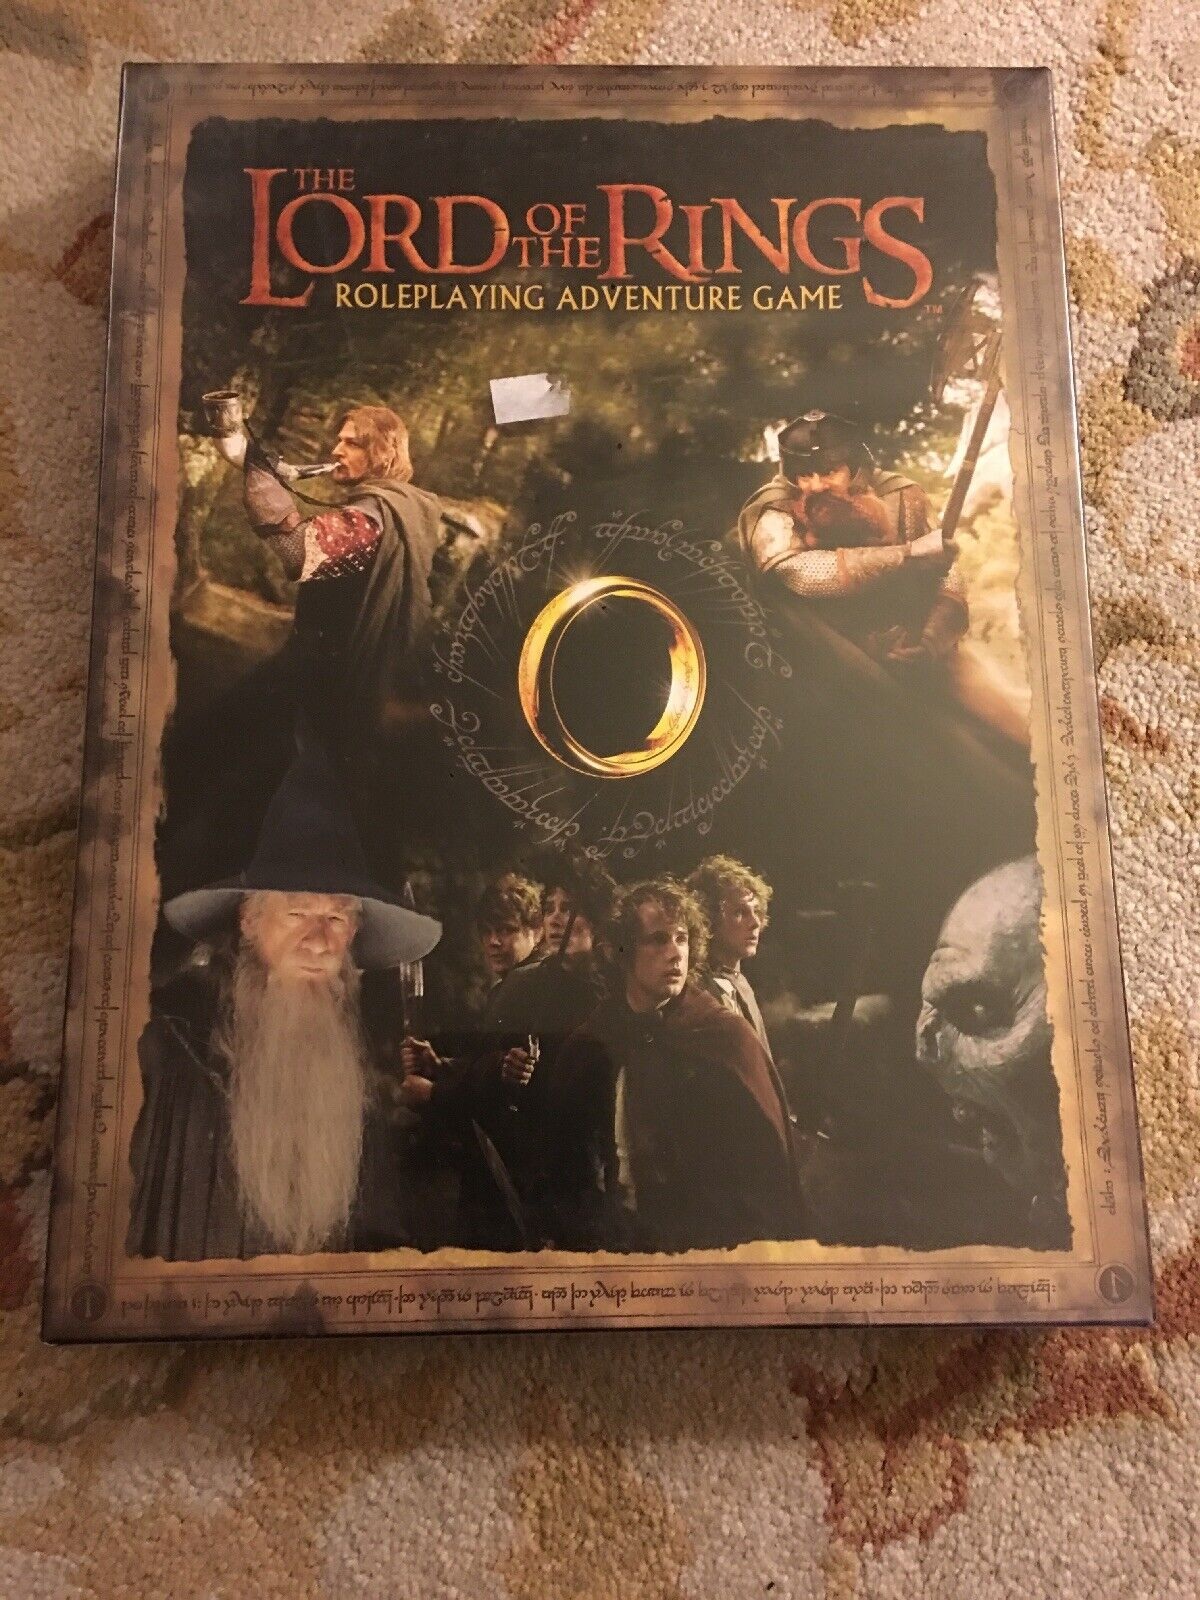 2001 The Lord of the Rings - Role-playing Adventure Game Factory Sealed Look